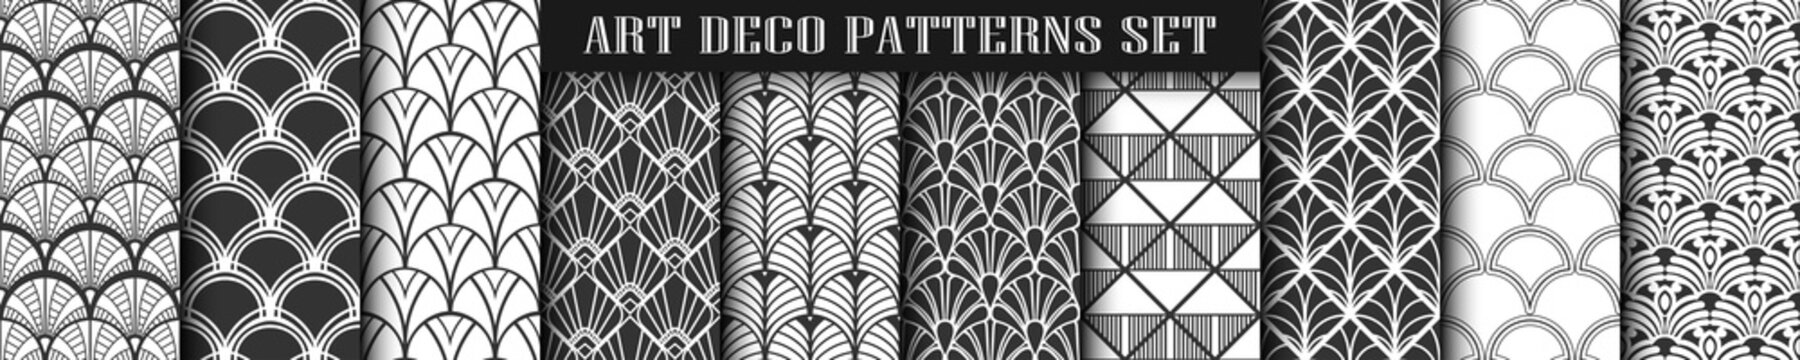 Art Deco Patterns set collection. Black and white luxury backgrounds. Fan scales ornaments. Geometric decorative digital papers. Vector line design. 1920-30s motifs